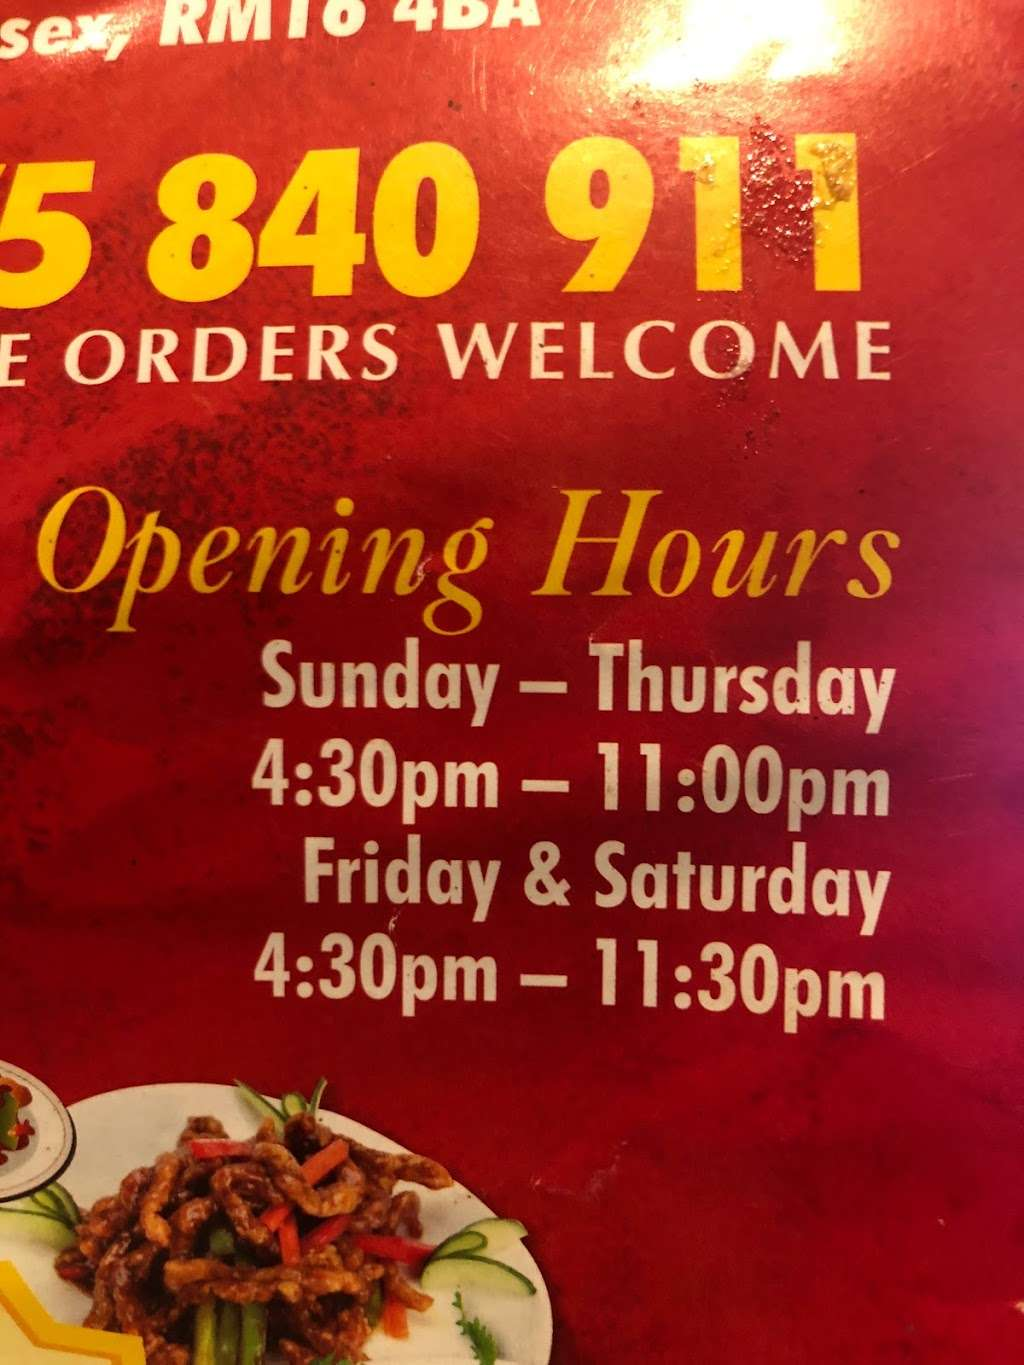 Hing Long - meal takeaway  | Photo 2 of 6 | Address: 113 River View, Thurrock, Grays RM16 4BA, UK | Phone: 01375 840911